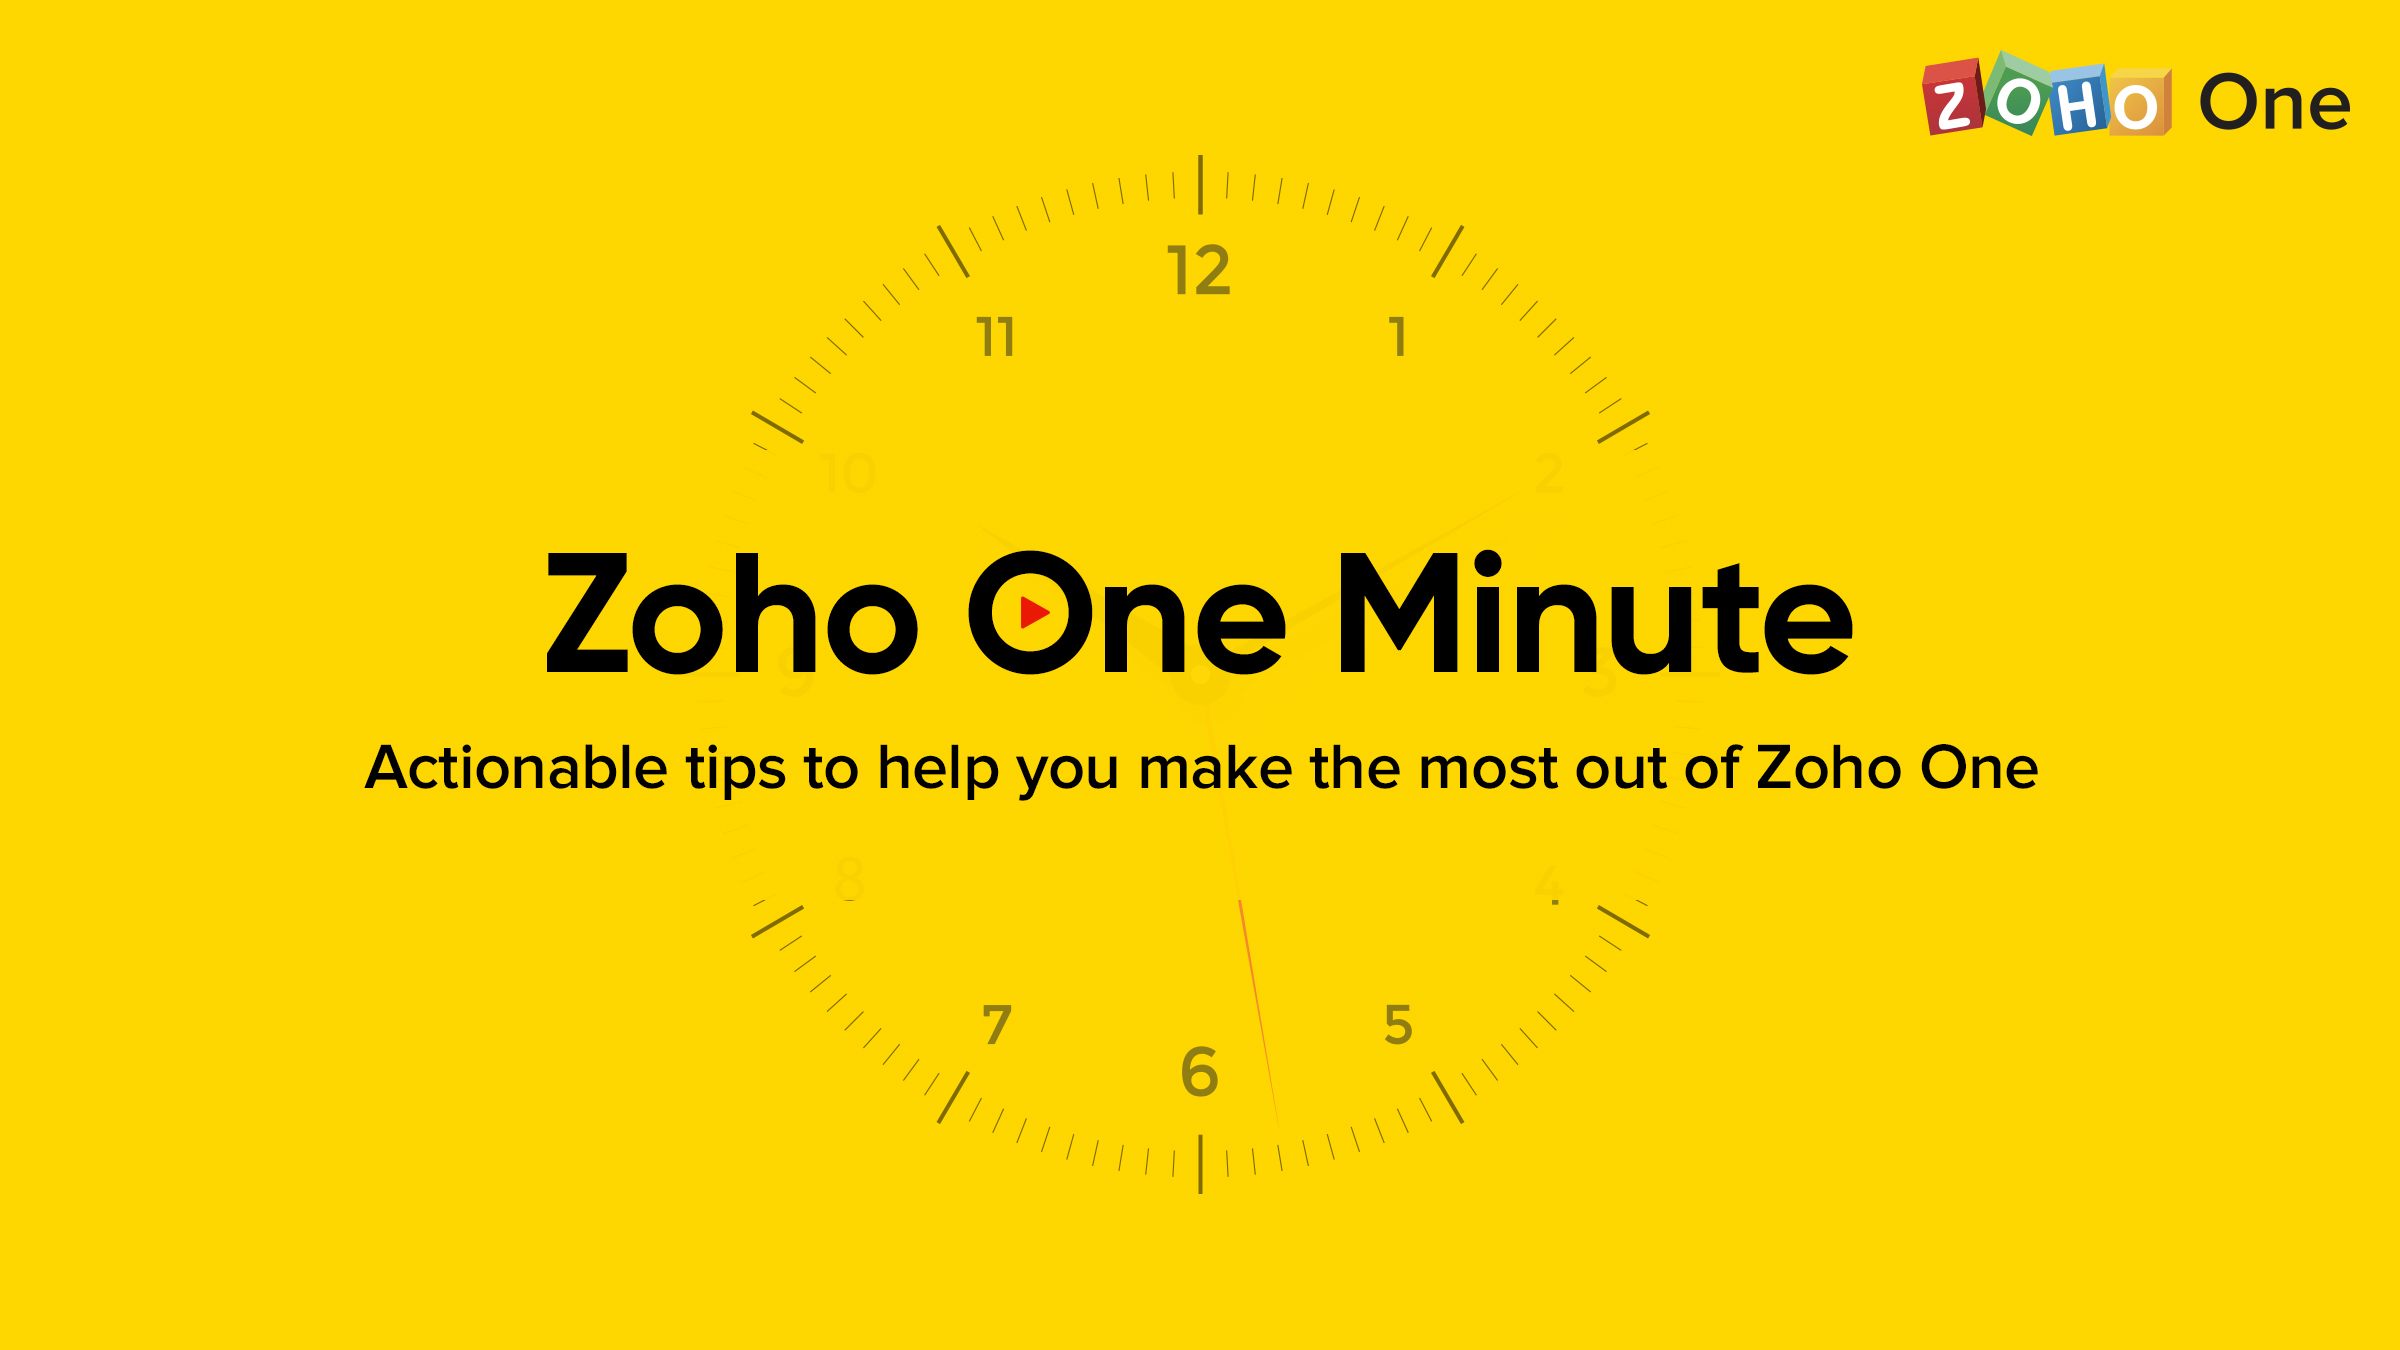 Introducing Zoho One Minute: A series of short videos to help users make the most out of Zoho One